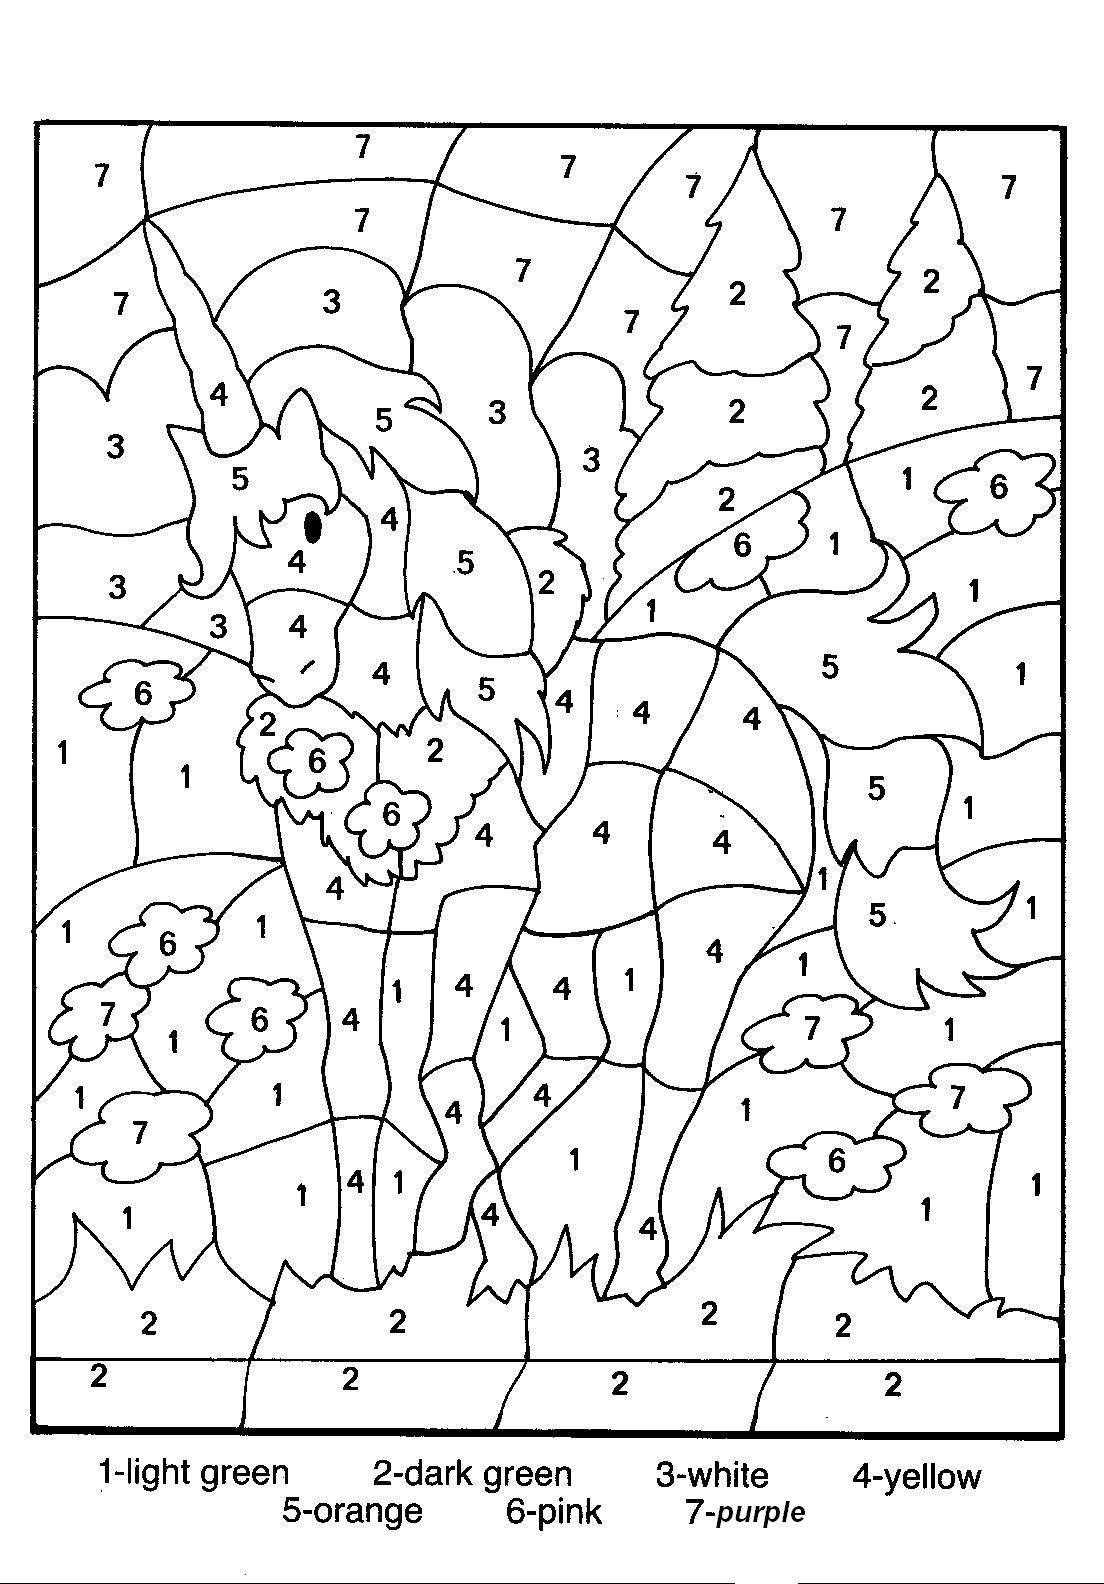 Coloring games in english - Number Coloring Pages Color By Number Coloring Pages For Kids 10